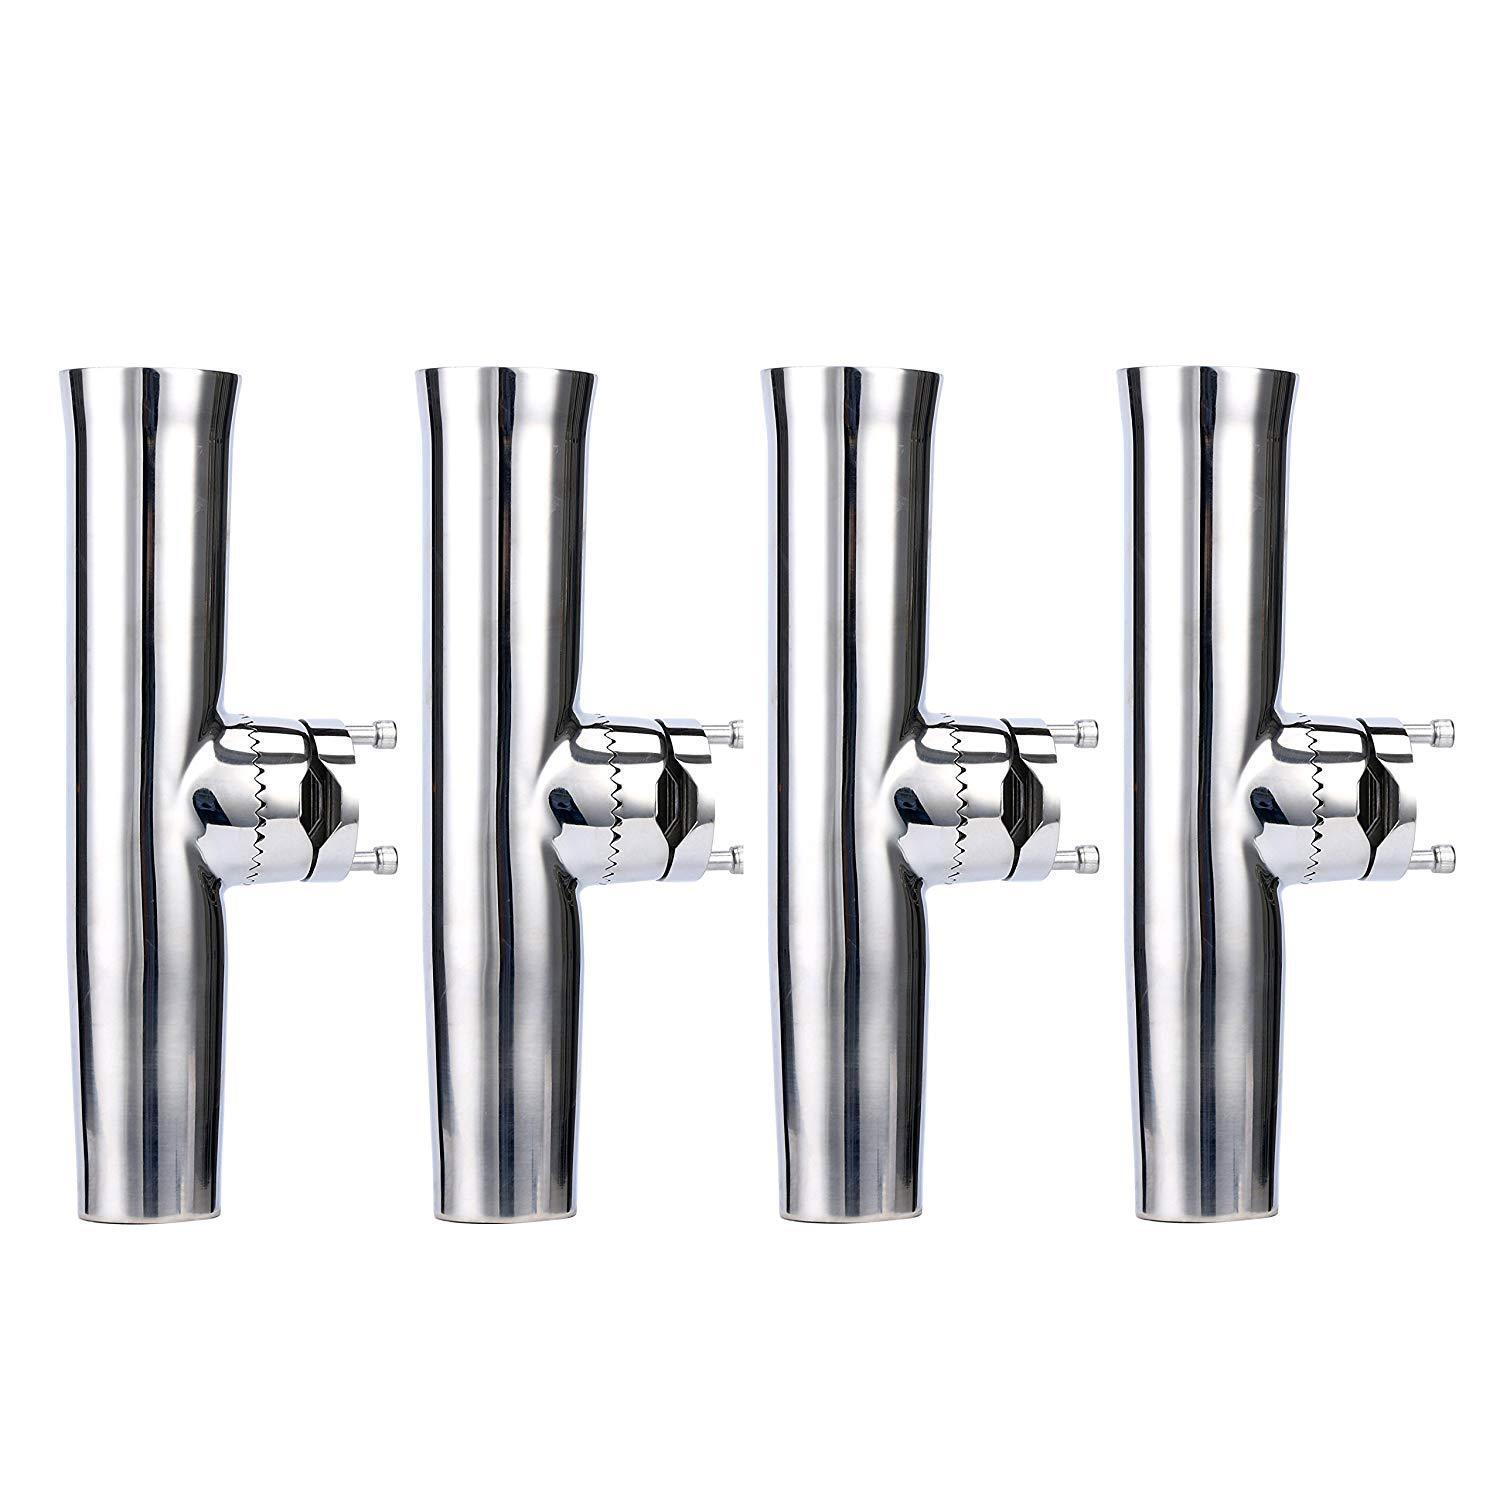 4 PCS Stainless Tournament Style Clamp on Fishing Rod Holder For Rail 78 to 1